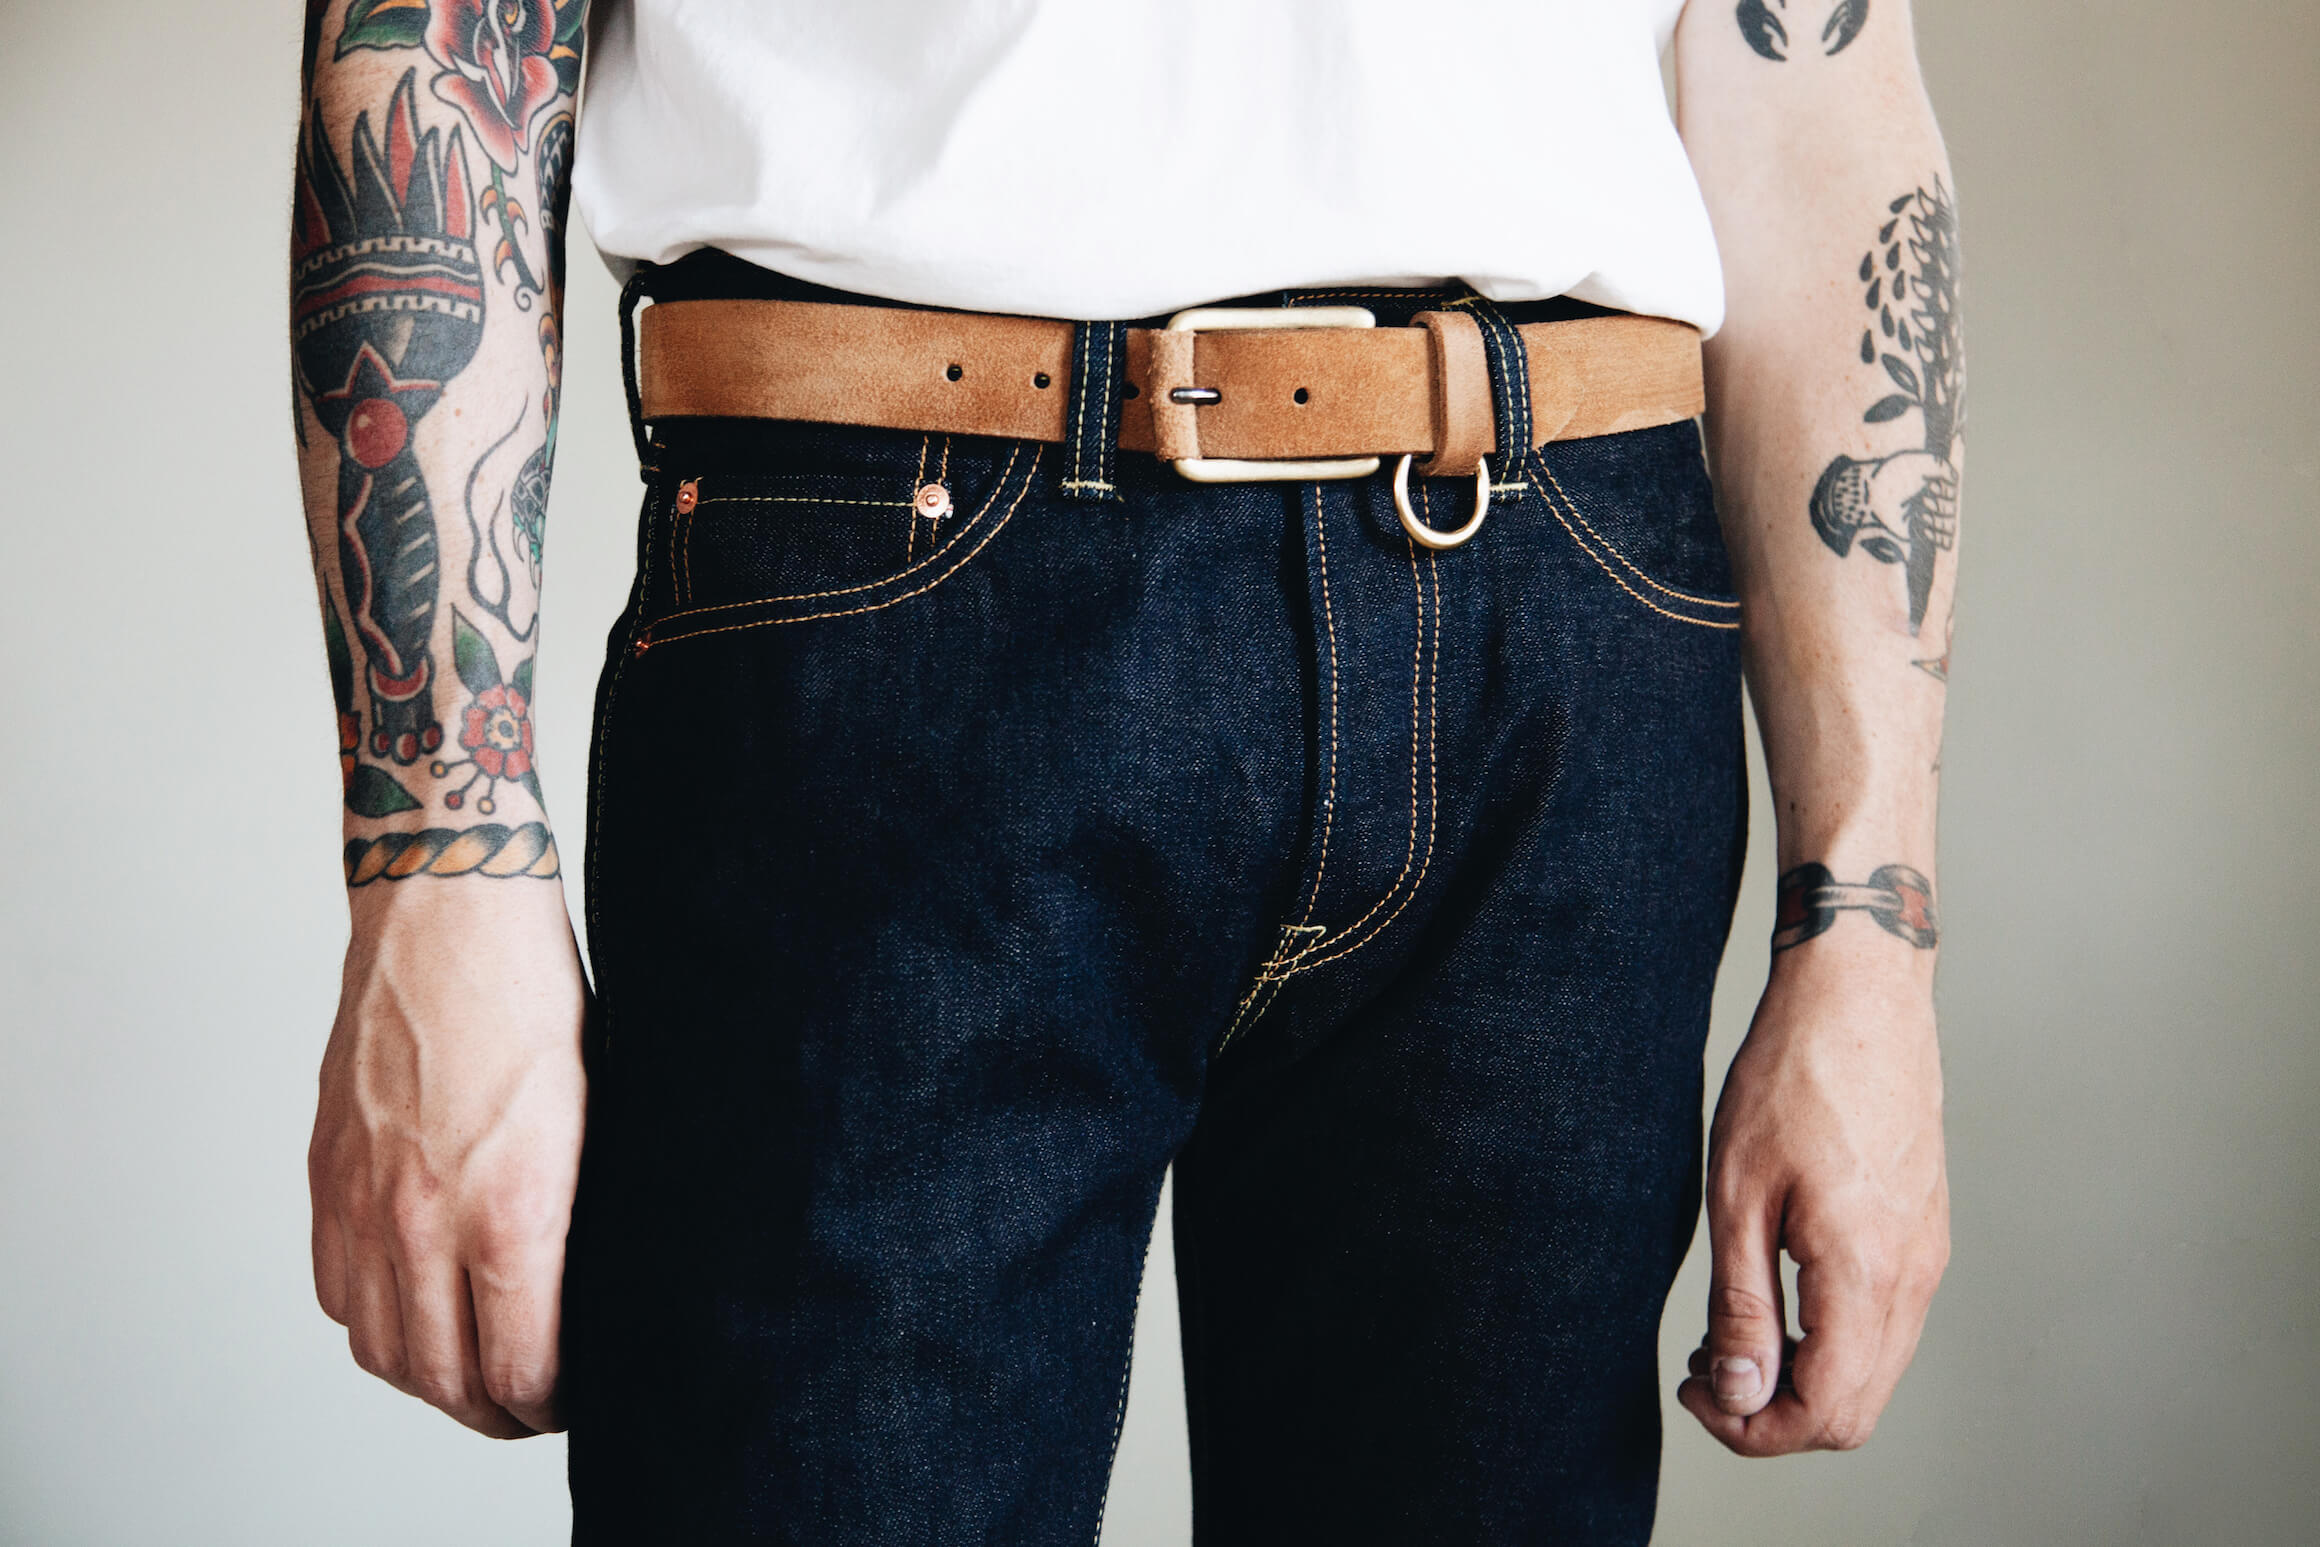 Iron Heart 555 16oz. Classic Denim jeans with yuketen belt on body